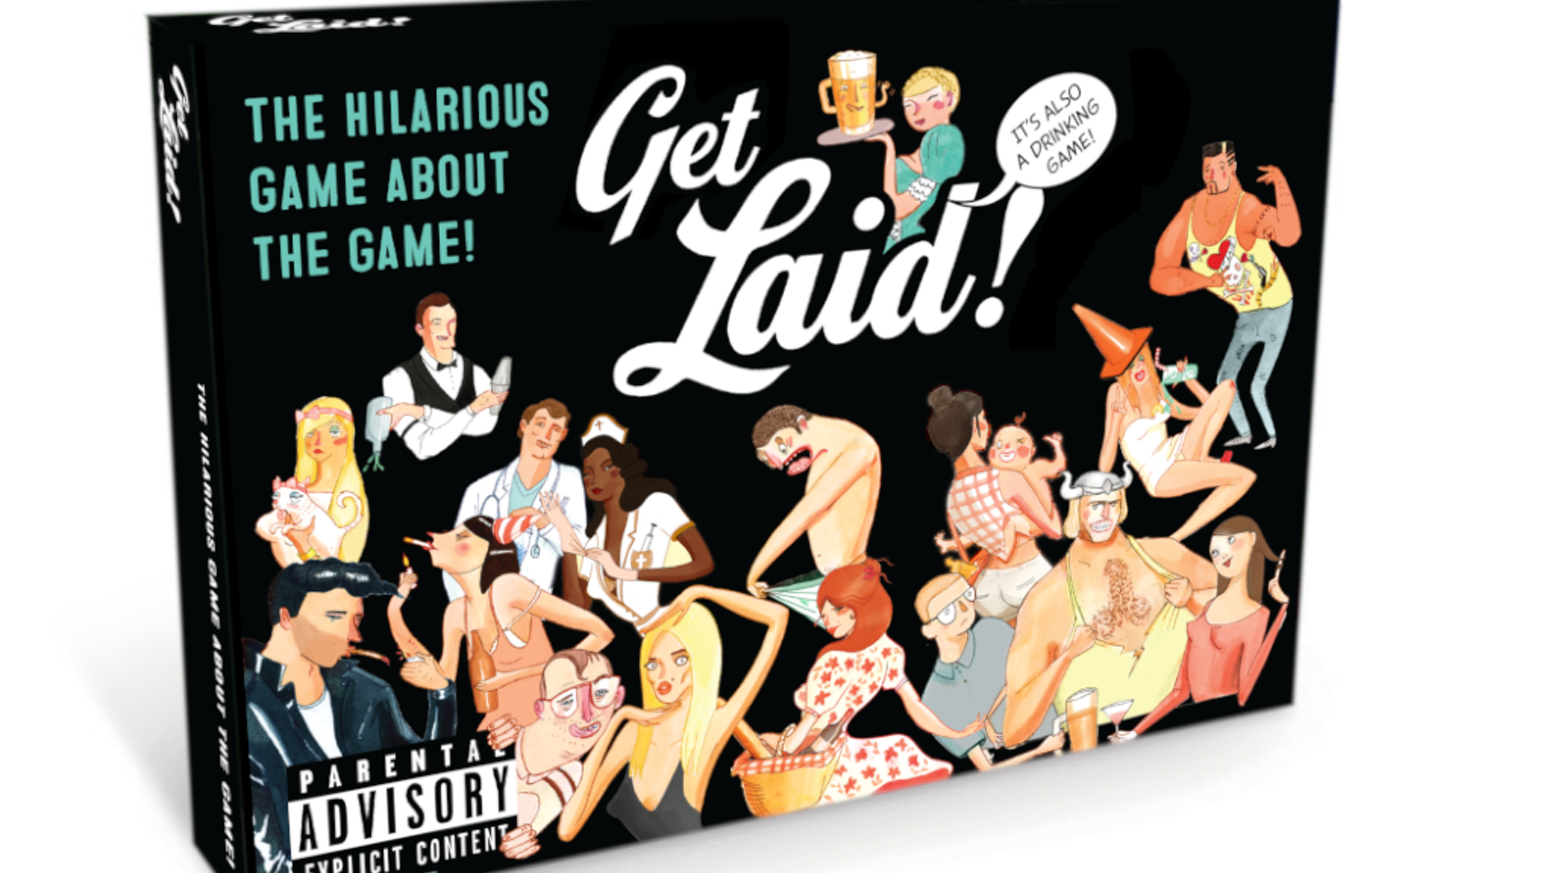 The hilarious game about the game. Which can also be a drinking game. So grab a bunch of friends and prepare to laugh your ass off!